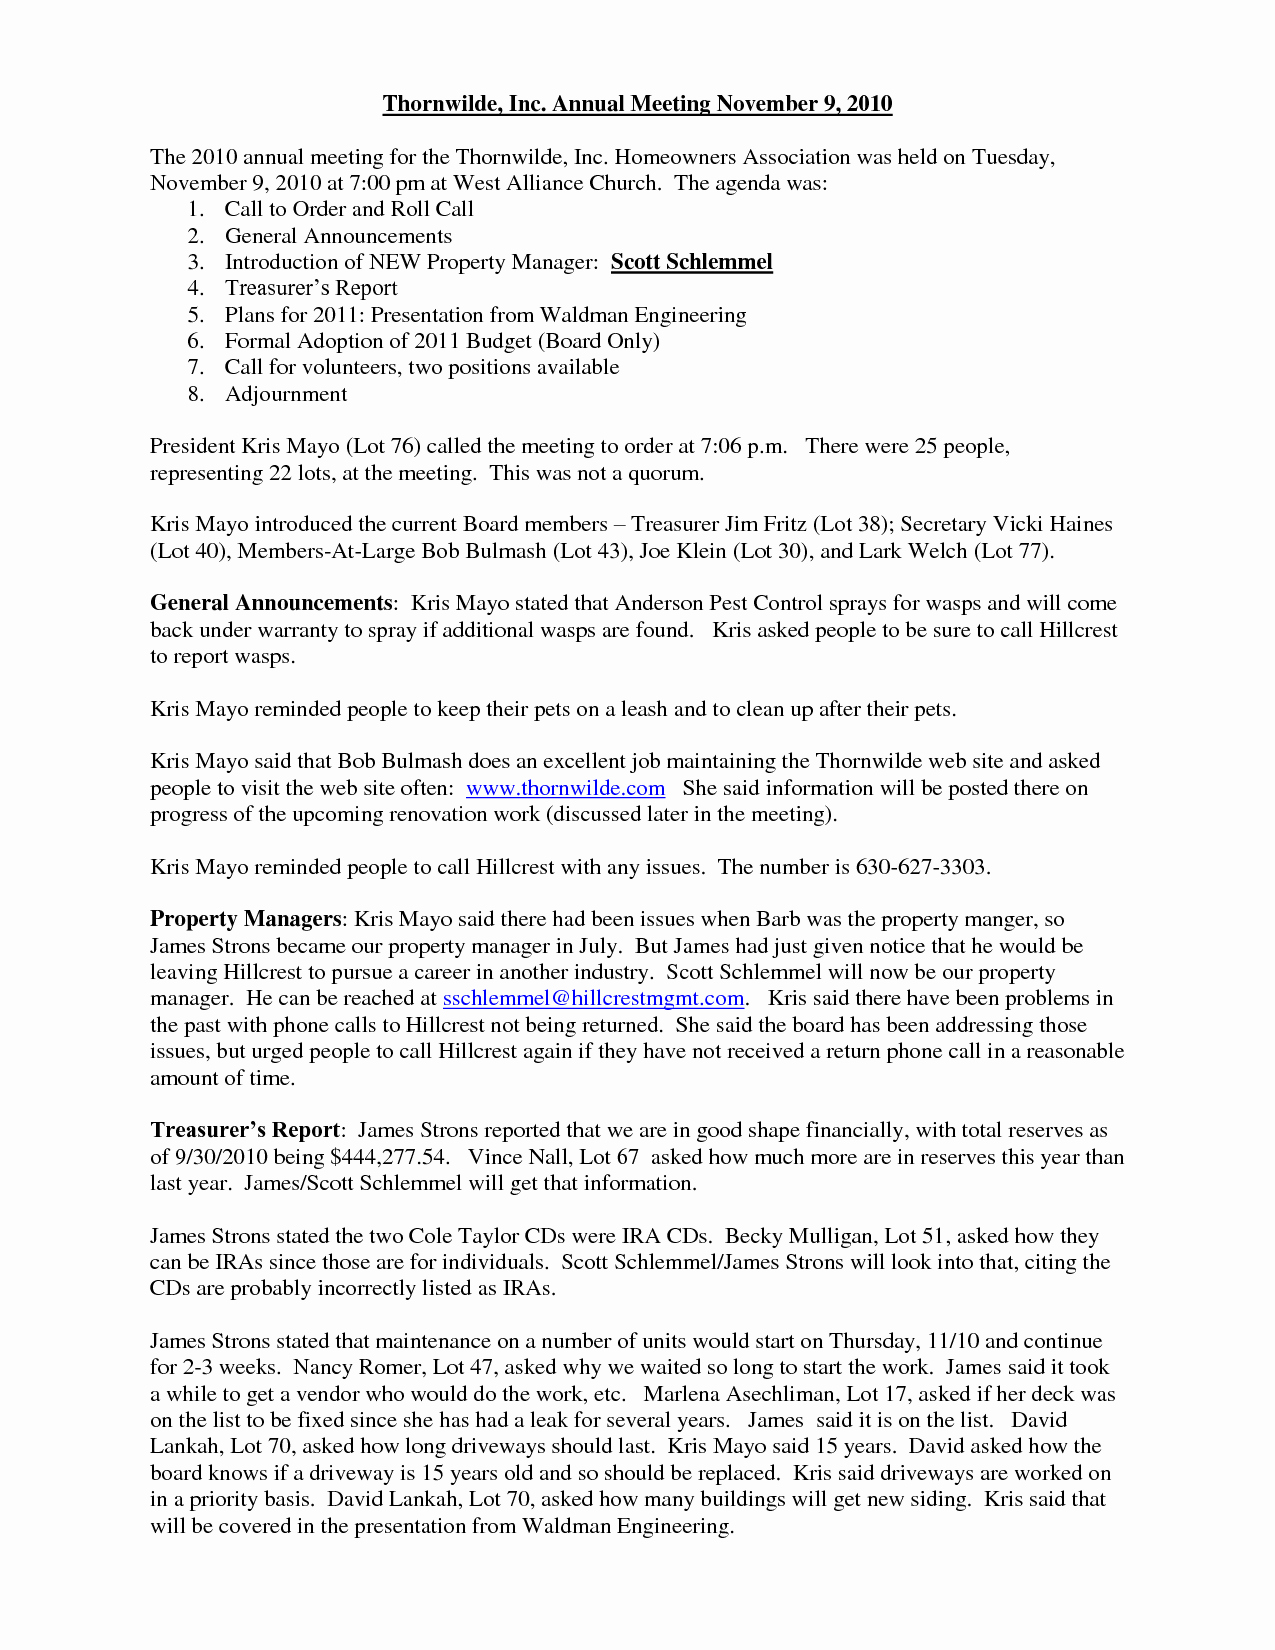 Hoa Board Meeting Minutes Template New Template Gallery Page 6